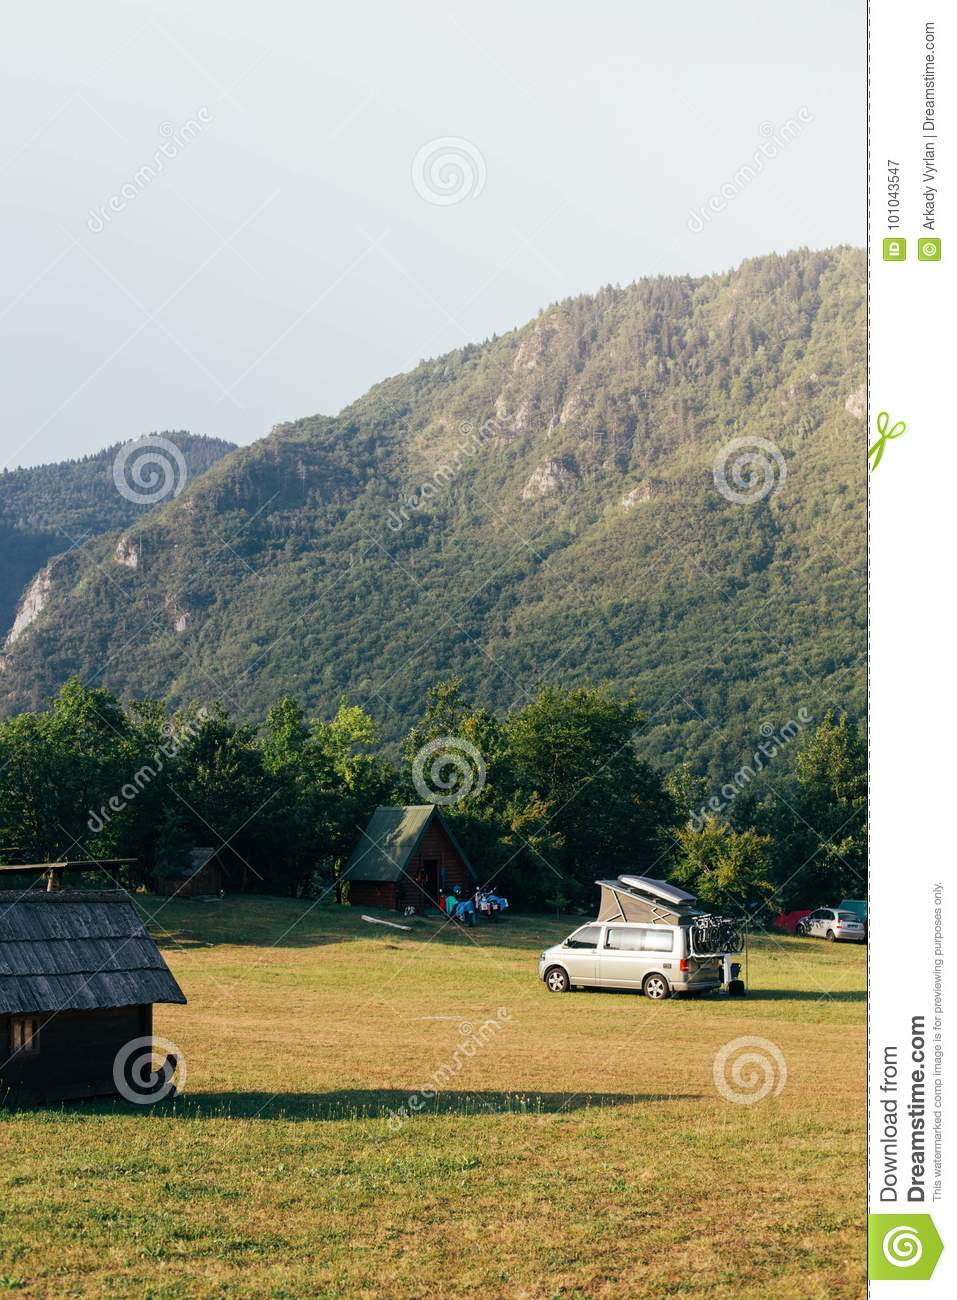 View On Camp Site And Camper Van Parked Stock Image - Image